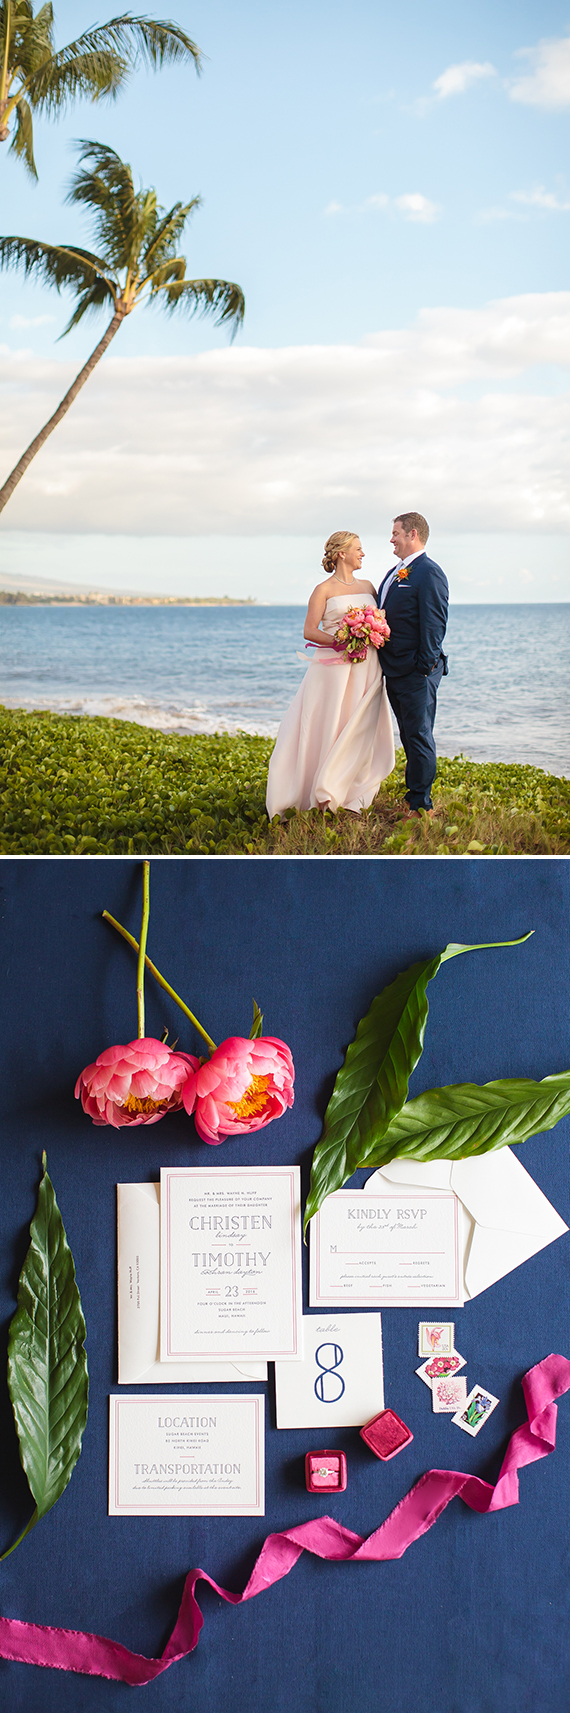 Maui Wedding at Sugar Beach Resort